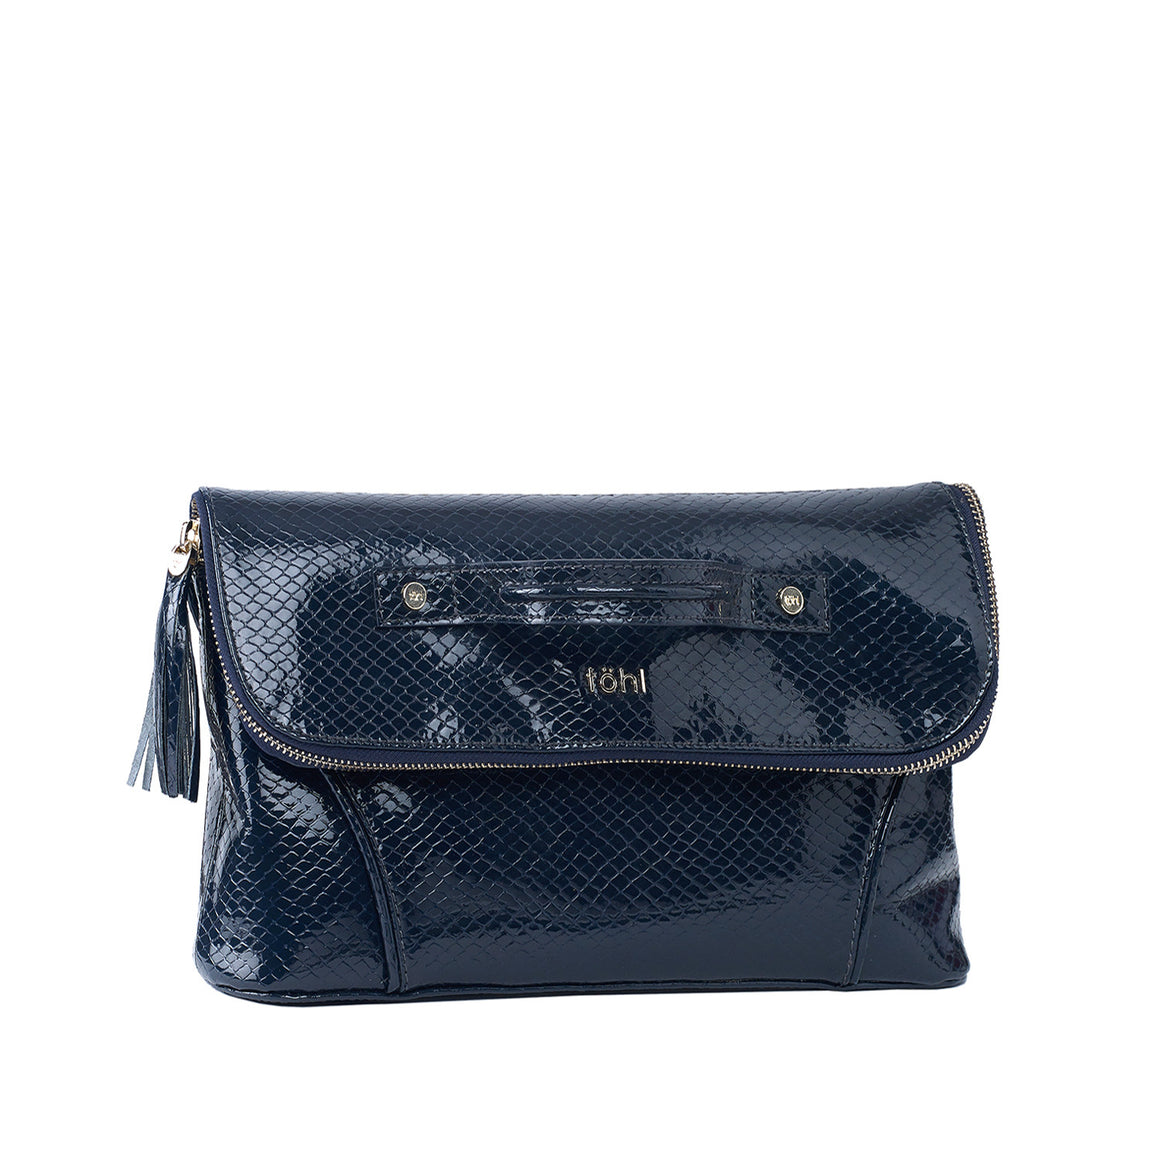 CH 0001 - TOHL TARA WOMEN'S TASSELED CLUTCH - ANGOLA NAVY